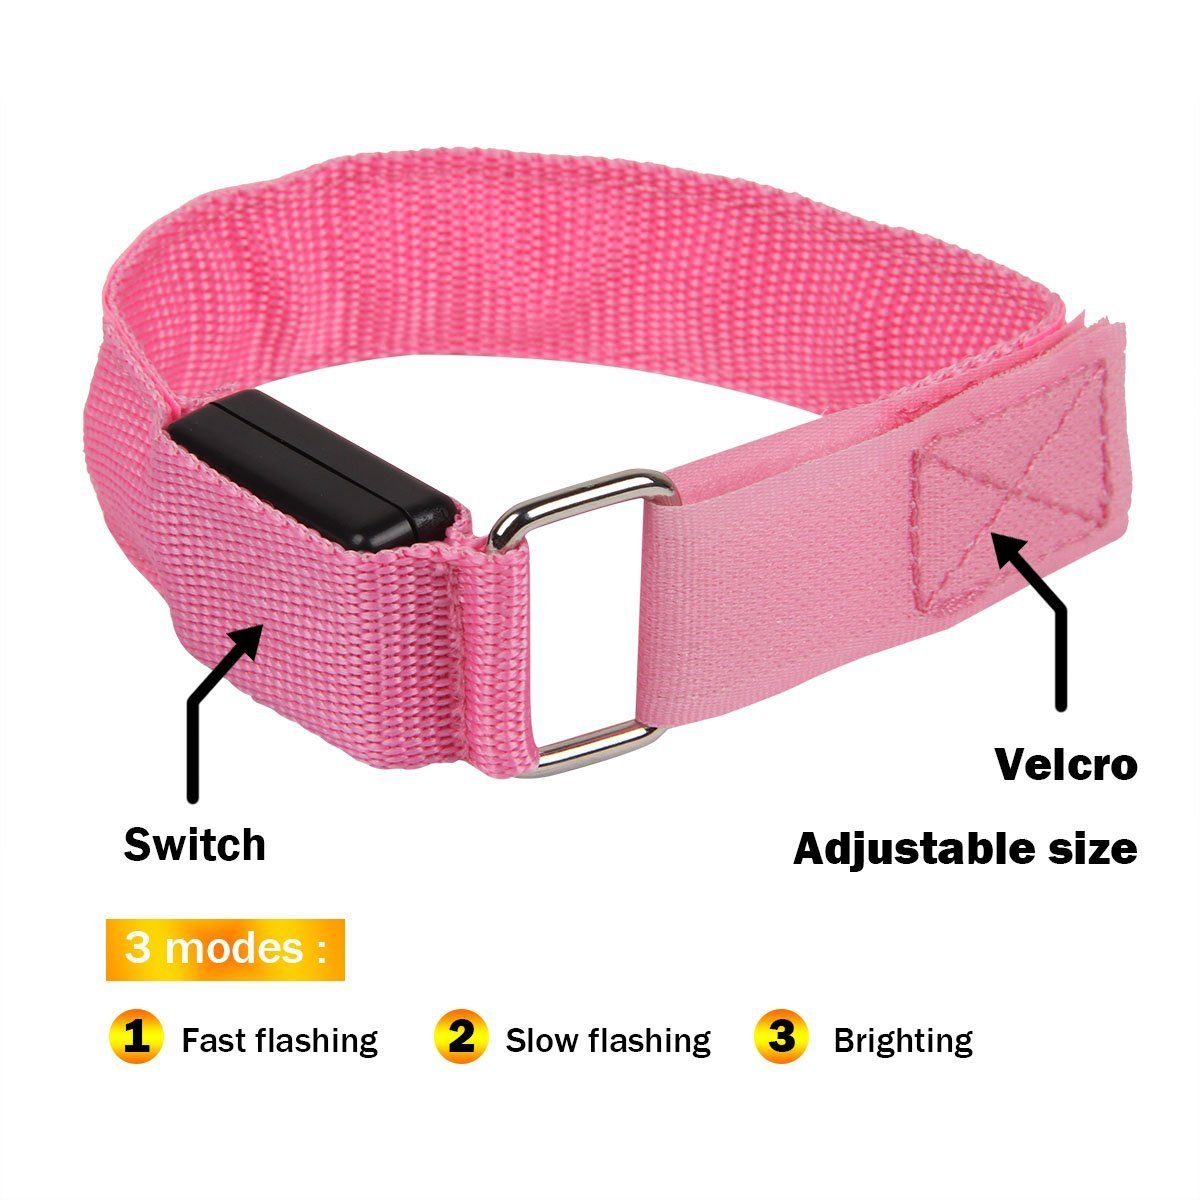 Night Safety Lights for Running Fashion/&cool LED Slap Band Jogging Cycling USB Rechargeable Light Up Sport Armband Glow in The Dark Adjustable Bracelets for Men/&Women Hiking